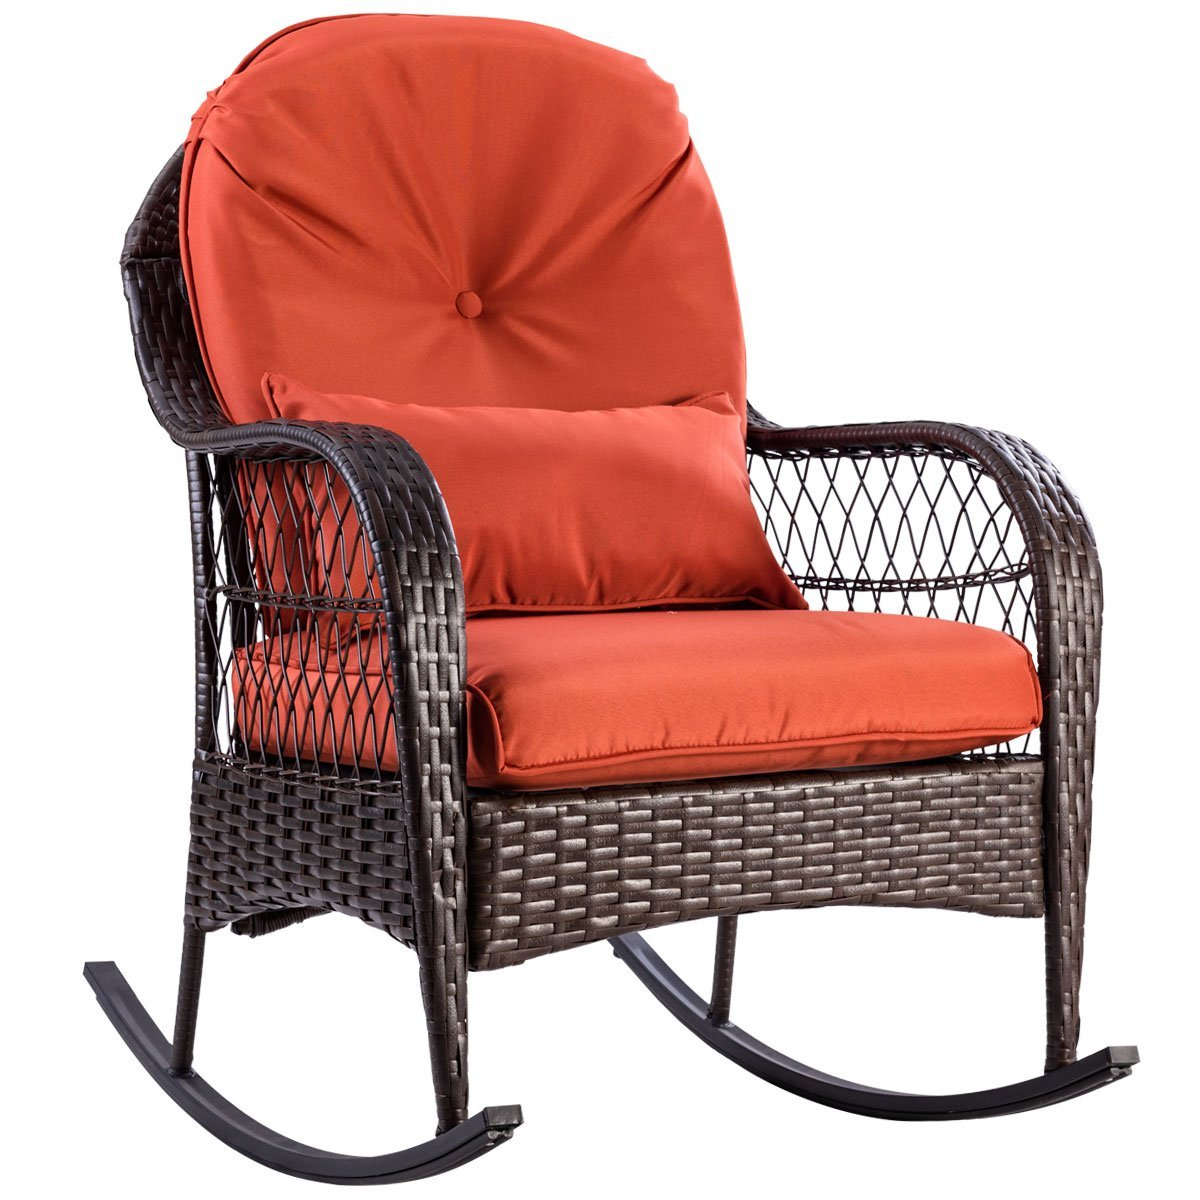 Get Quotations · TANGKULA Wicker Rocking Chair Outdoor Porch Garden Lawn  Deck Wicker All Weather Steel Frame Rocker Patio